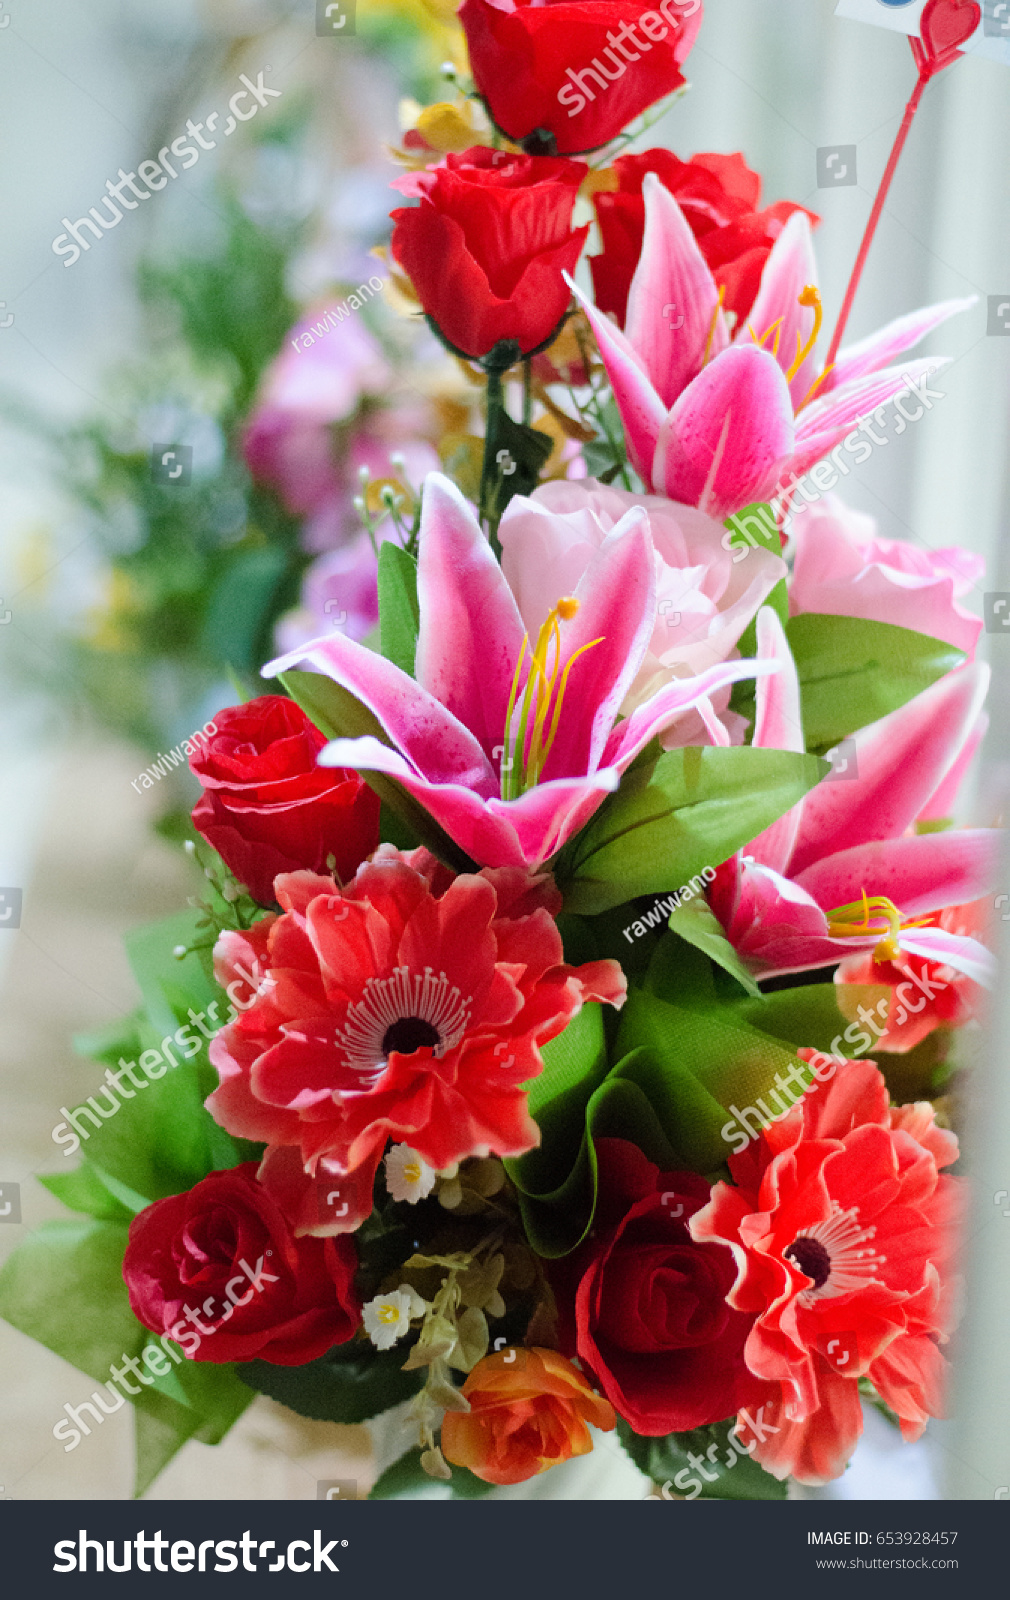 Beautiful flowers mixed red pink colors stock photo edit now beautiful flowers mixed red and pink colors in vase congratulation gift for occasions in good morning izmirmasajfo